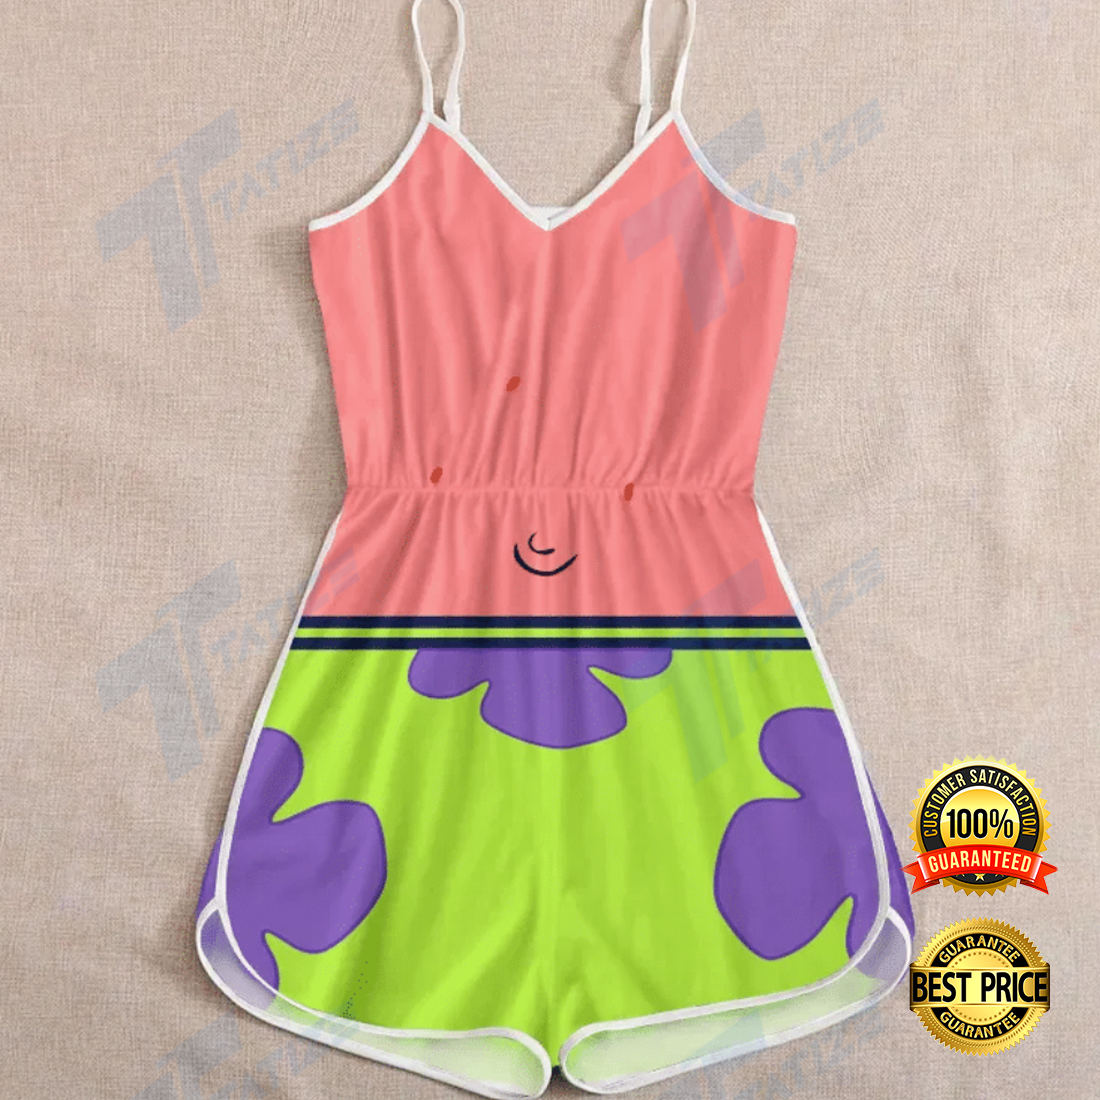 Patrick Star outfit romper 4